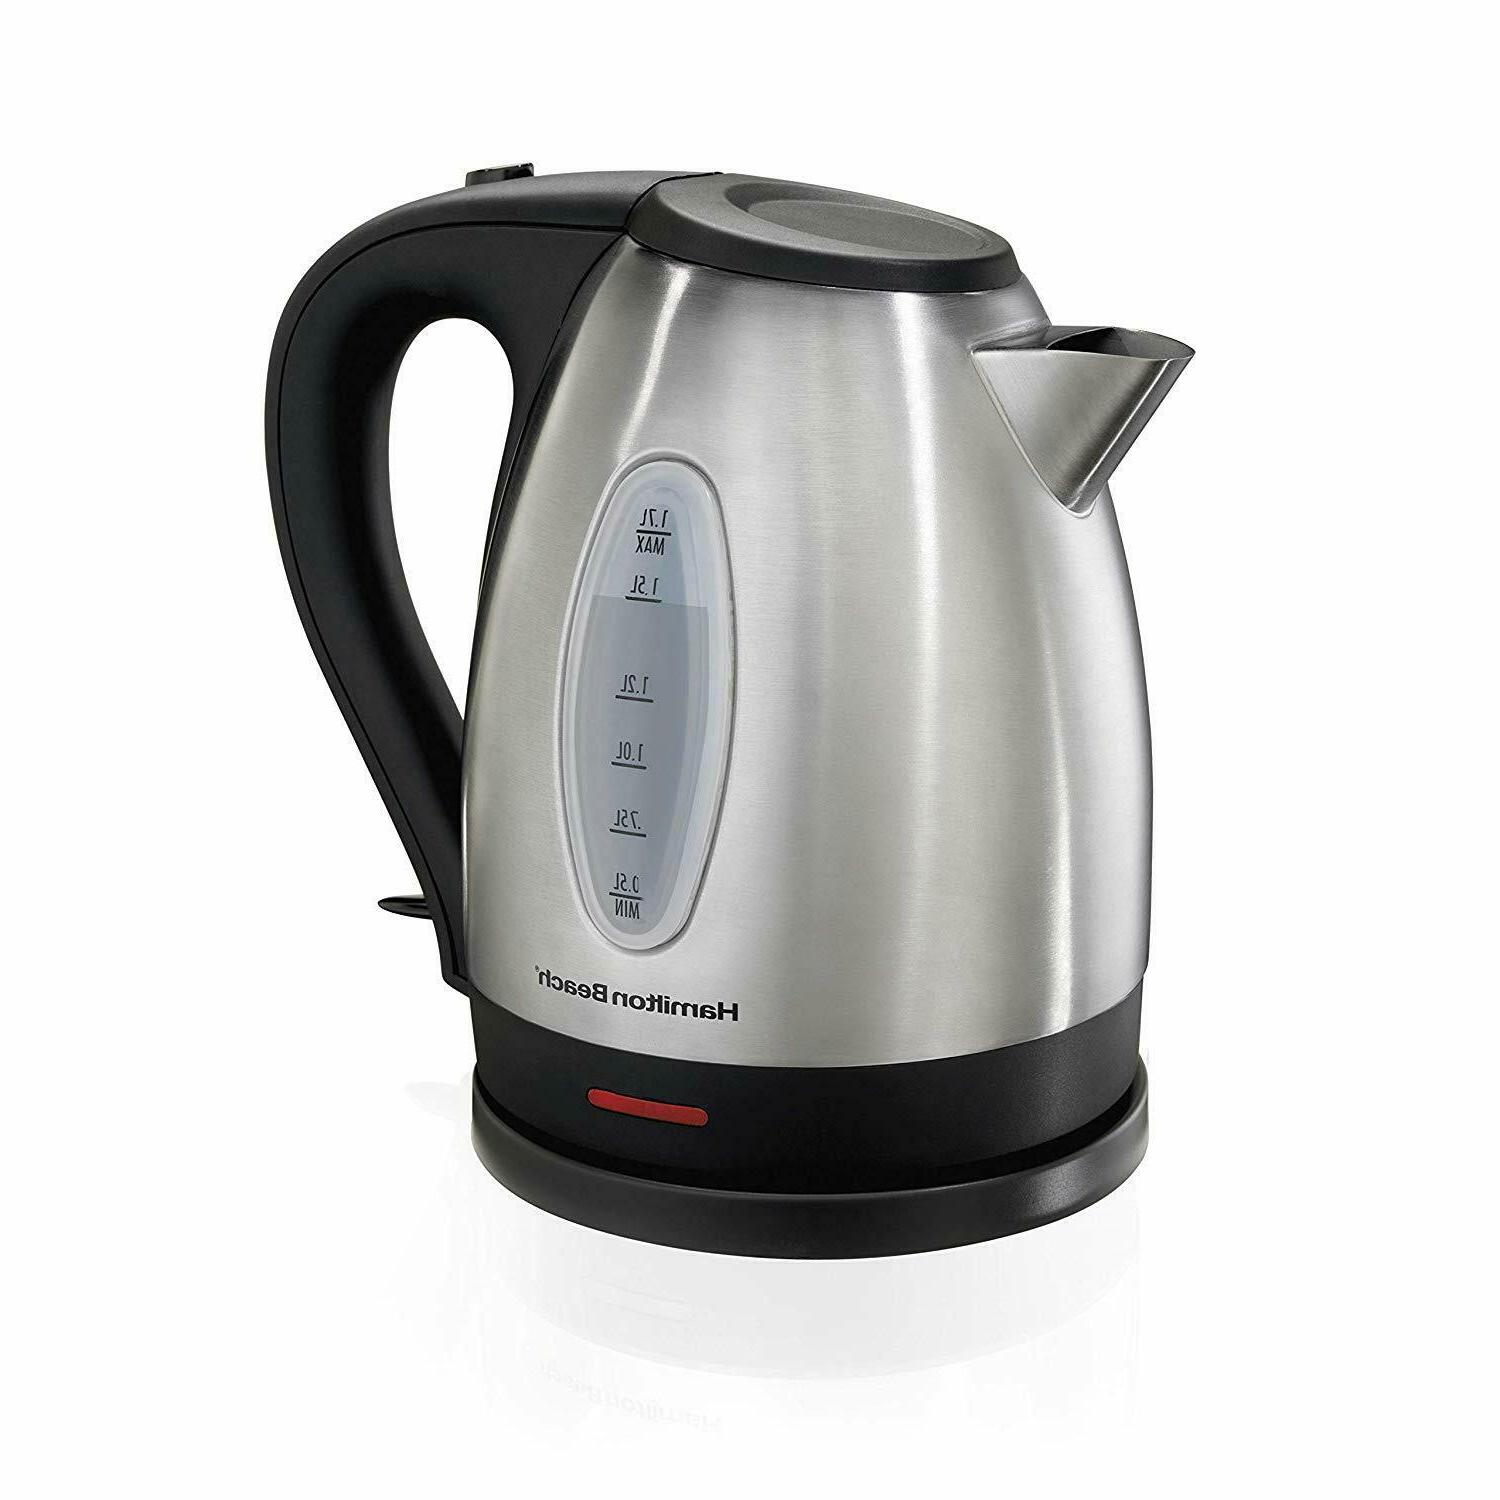 1 7 liter electric kettle for tea